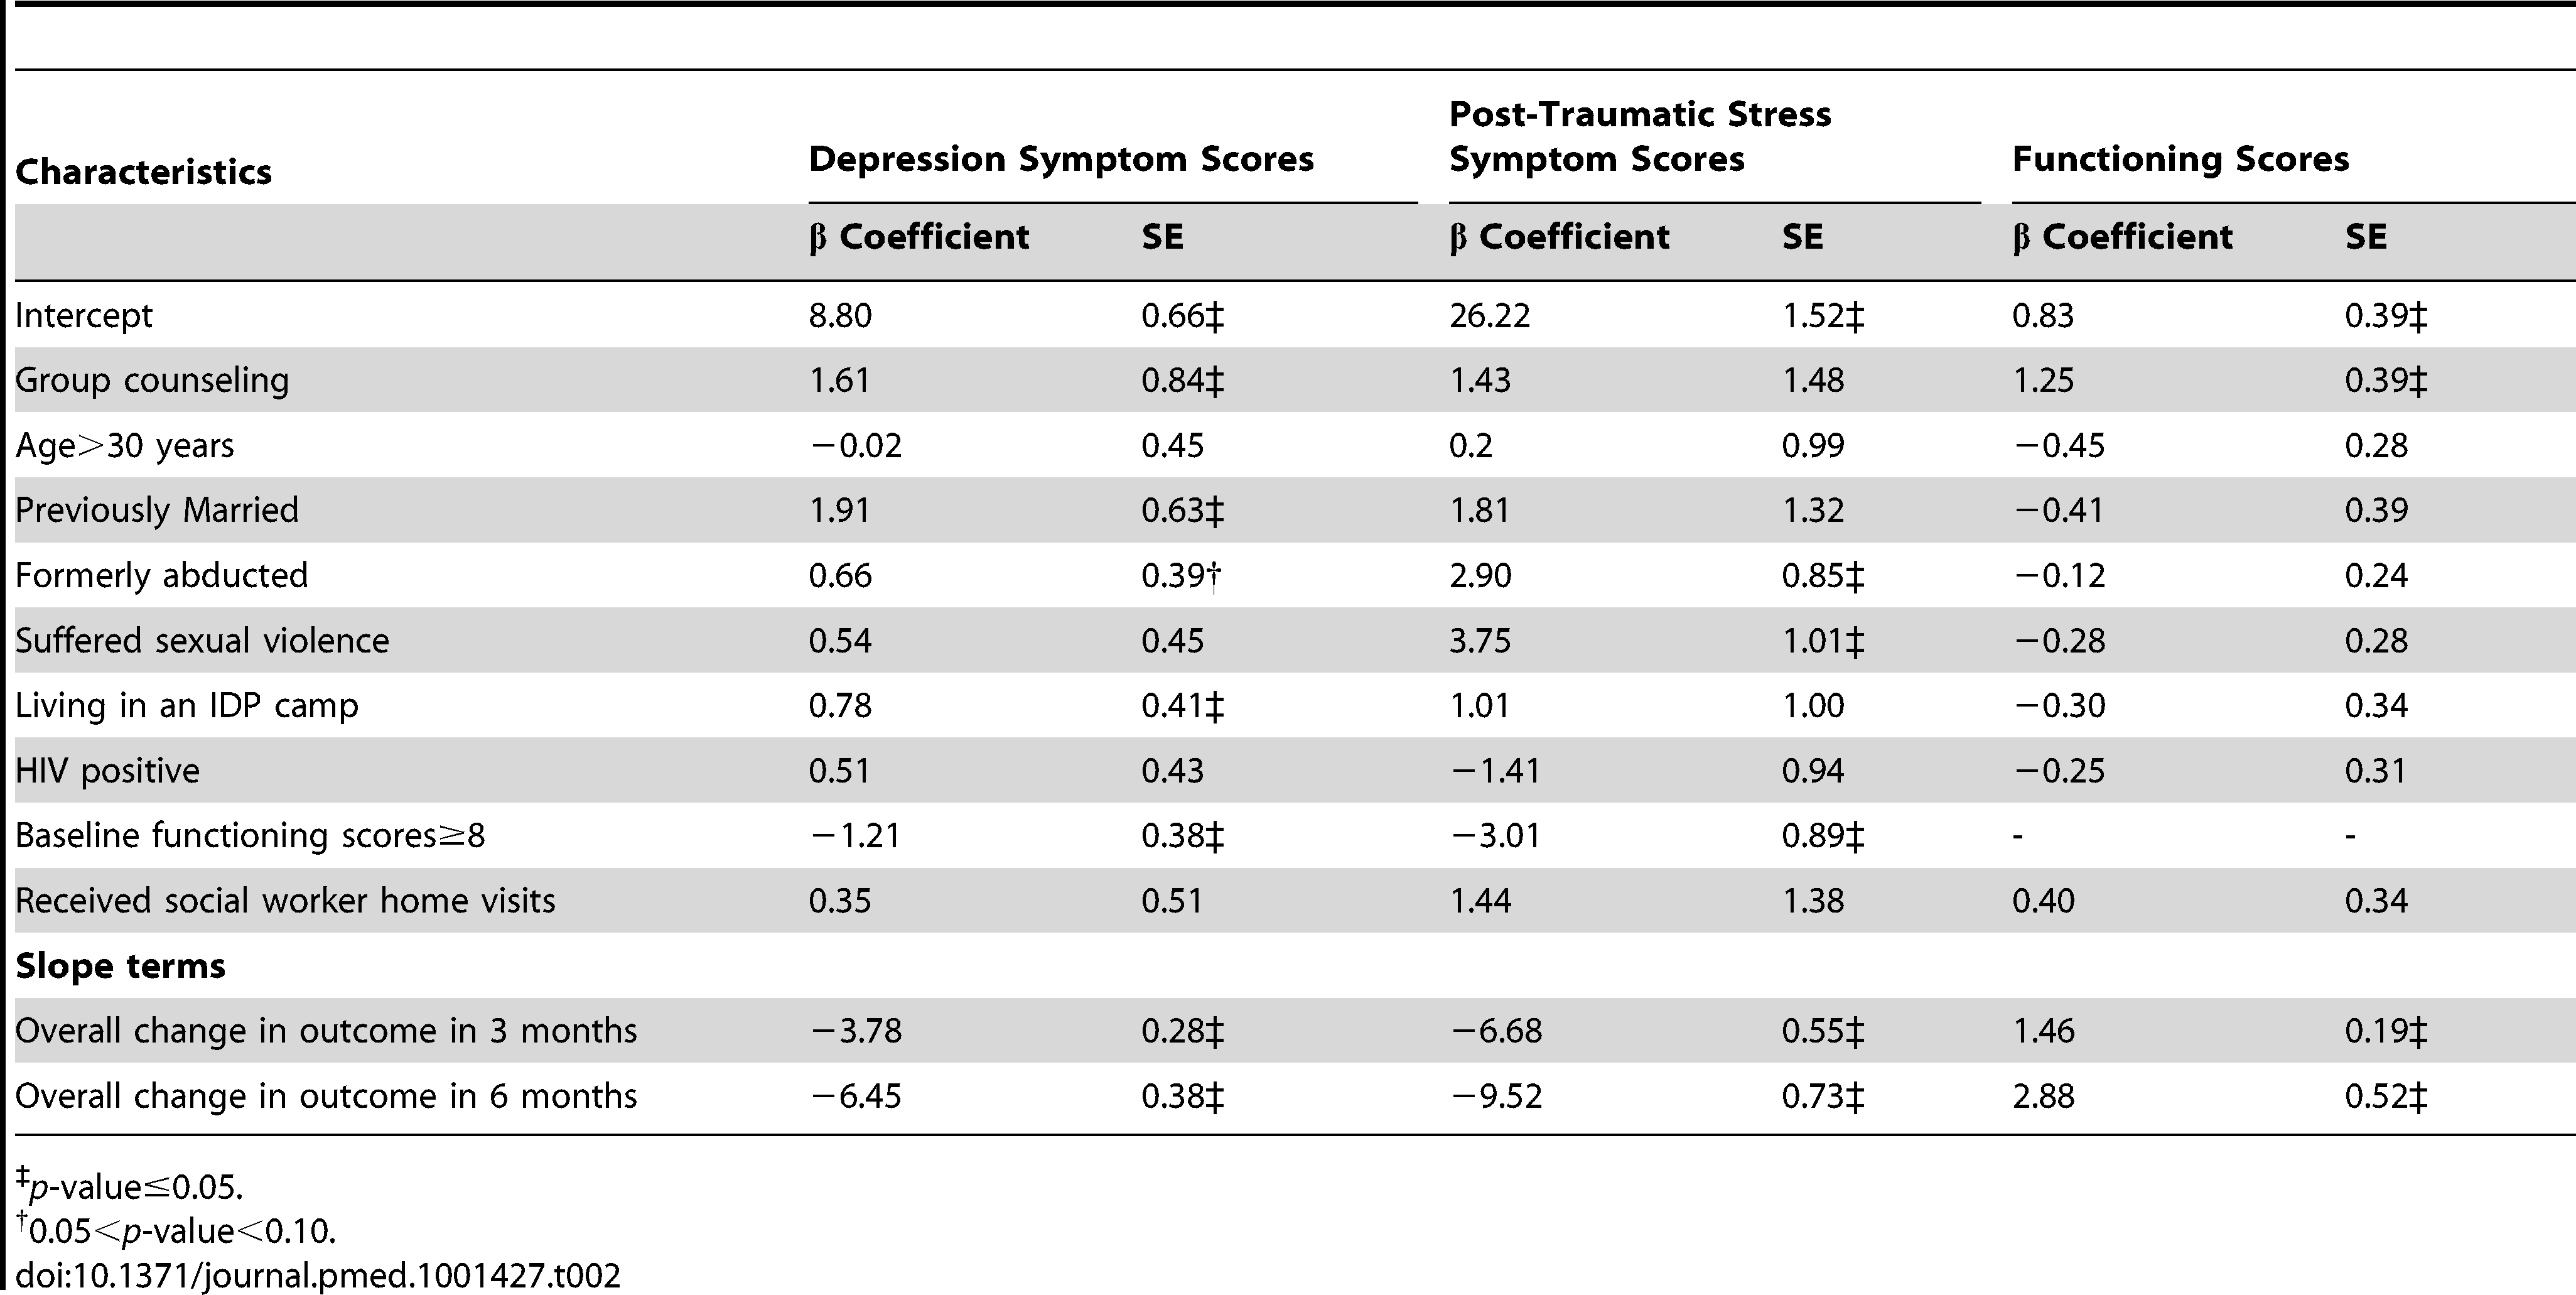 Longitudinal analysis of depression symptom scores, post-traumatic stress symptom scores and functioning scores over time (N = 375).